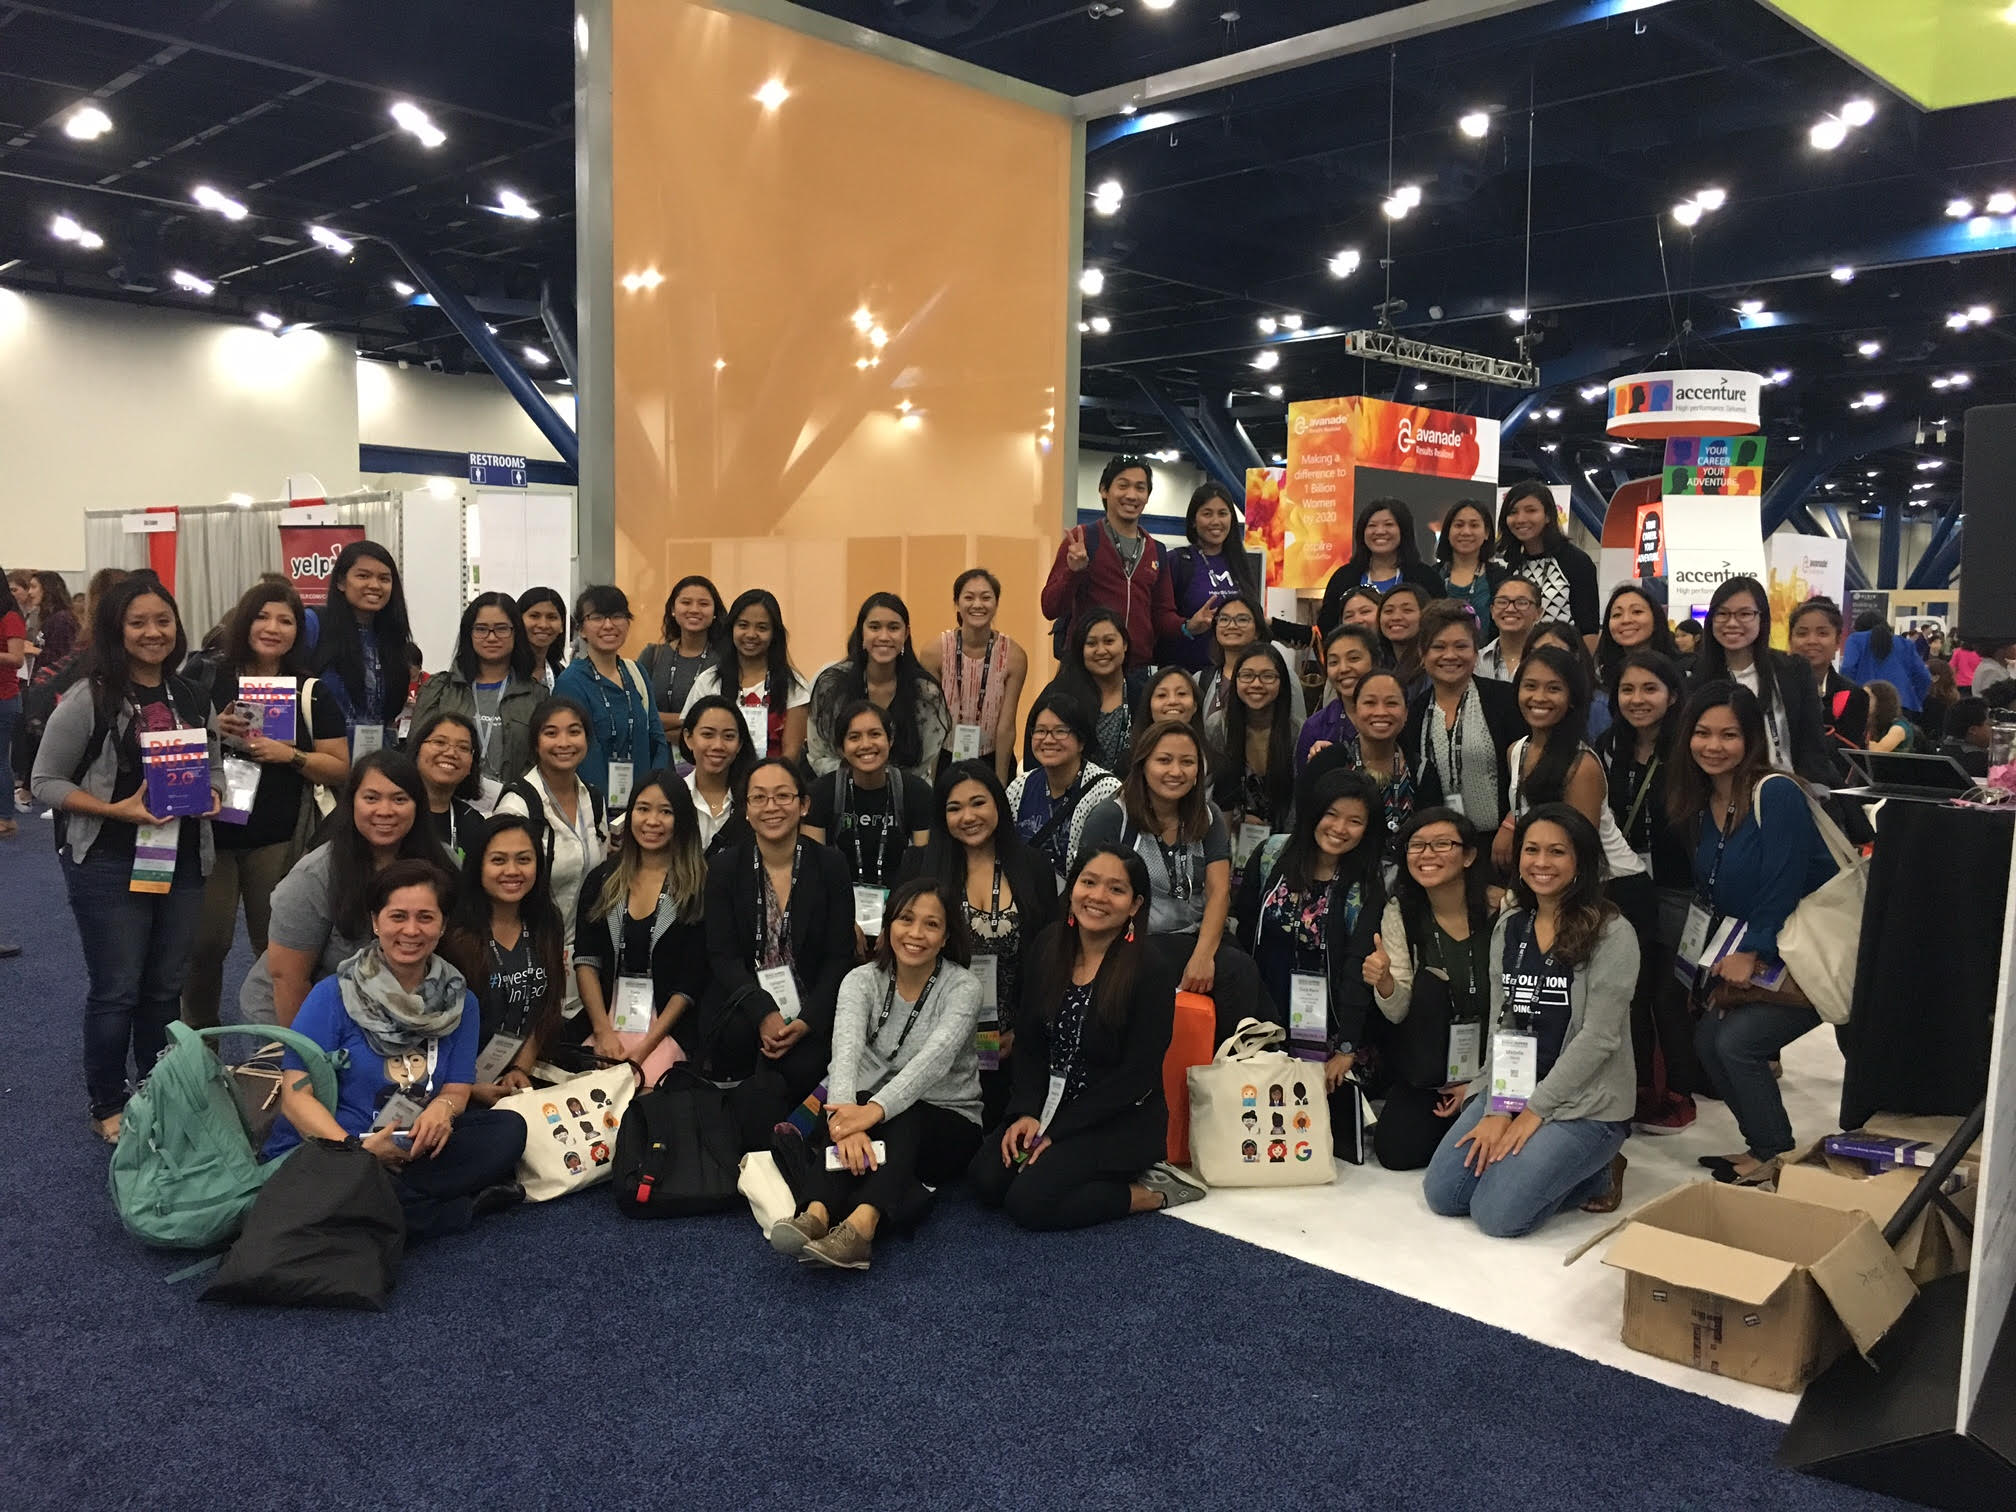 Woo Hoo! Anita Borg Institute raffled 25 copies of  DISRUPT 2.0: Filipina Women: Daring to Lead  to an eager Filipina Millennials  during the DISRUPTing Houston reading on October 13 broadcasted live from the Grace Hopper Celebration of Women in Computing in Houston Conference.